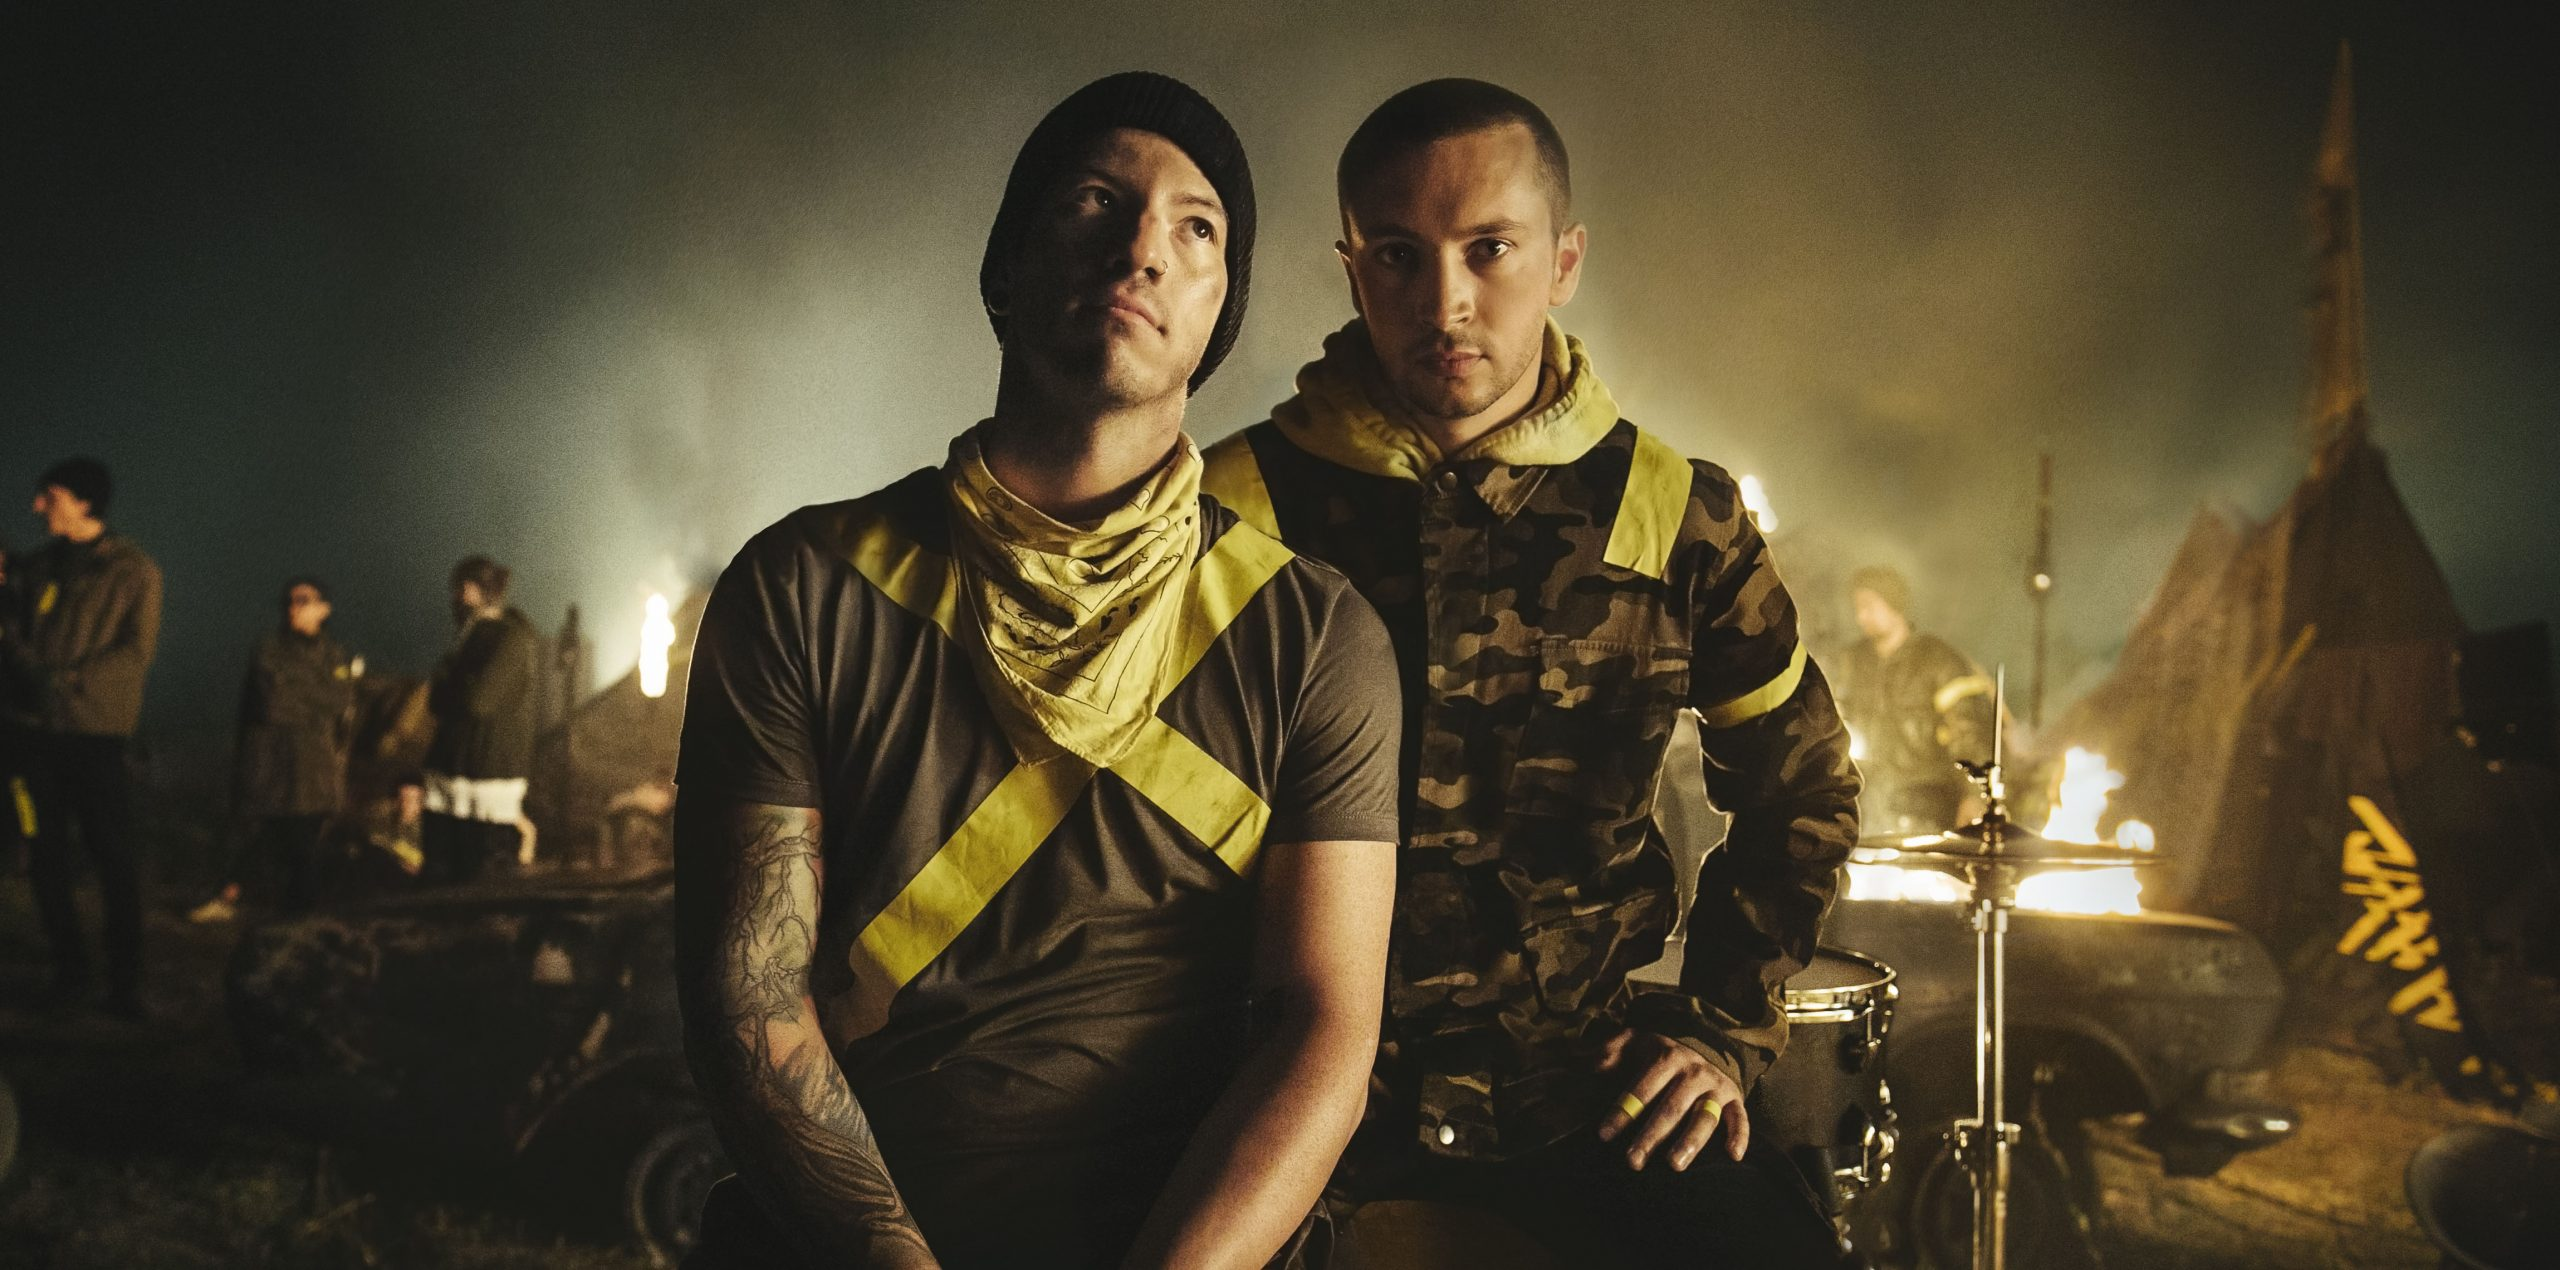 Listen to Twenty One Pilots' New Tracks 'Jumpsuit' and 'Nico And The Niners'